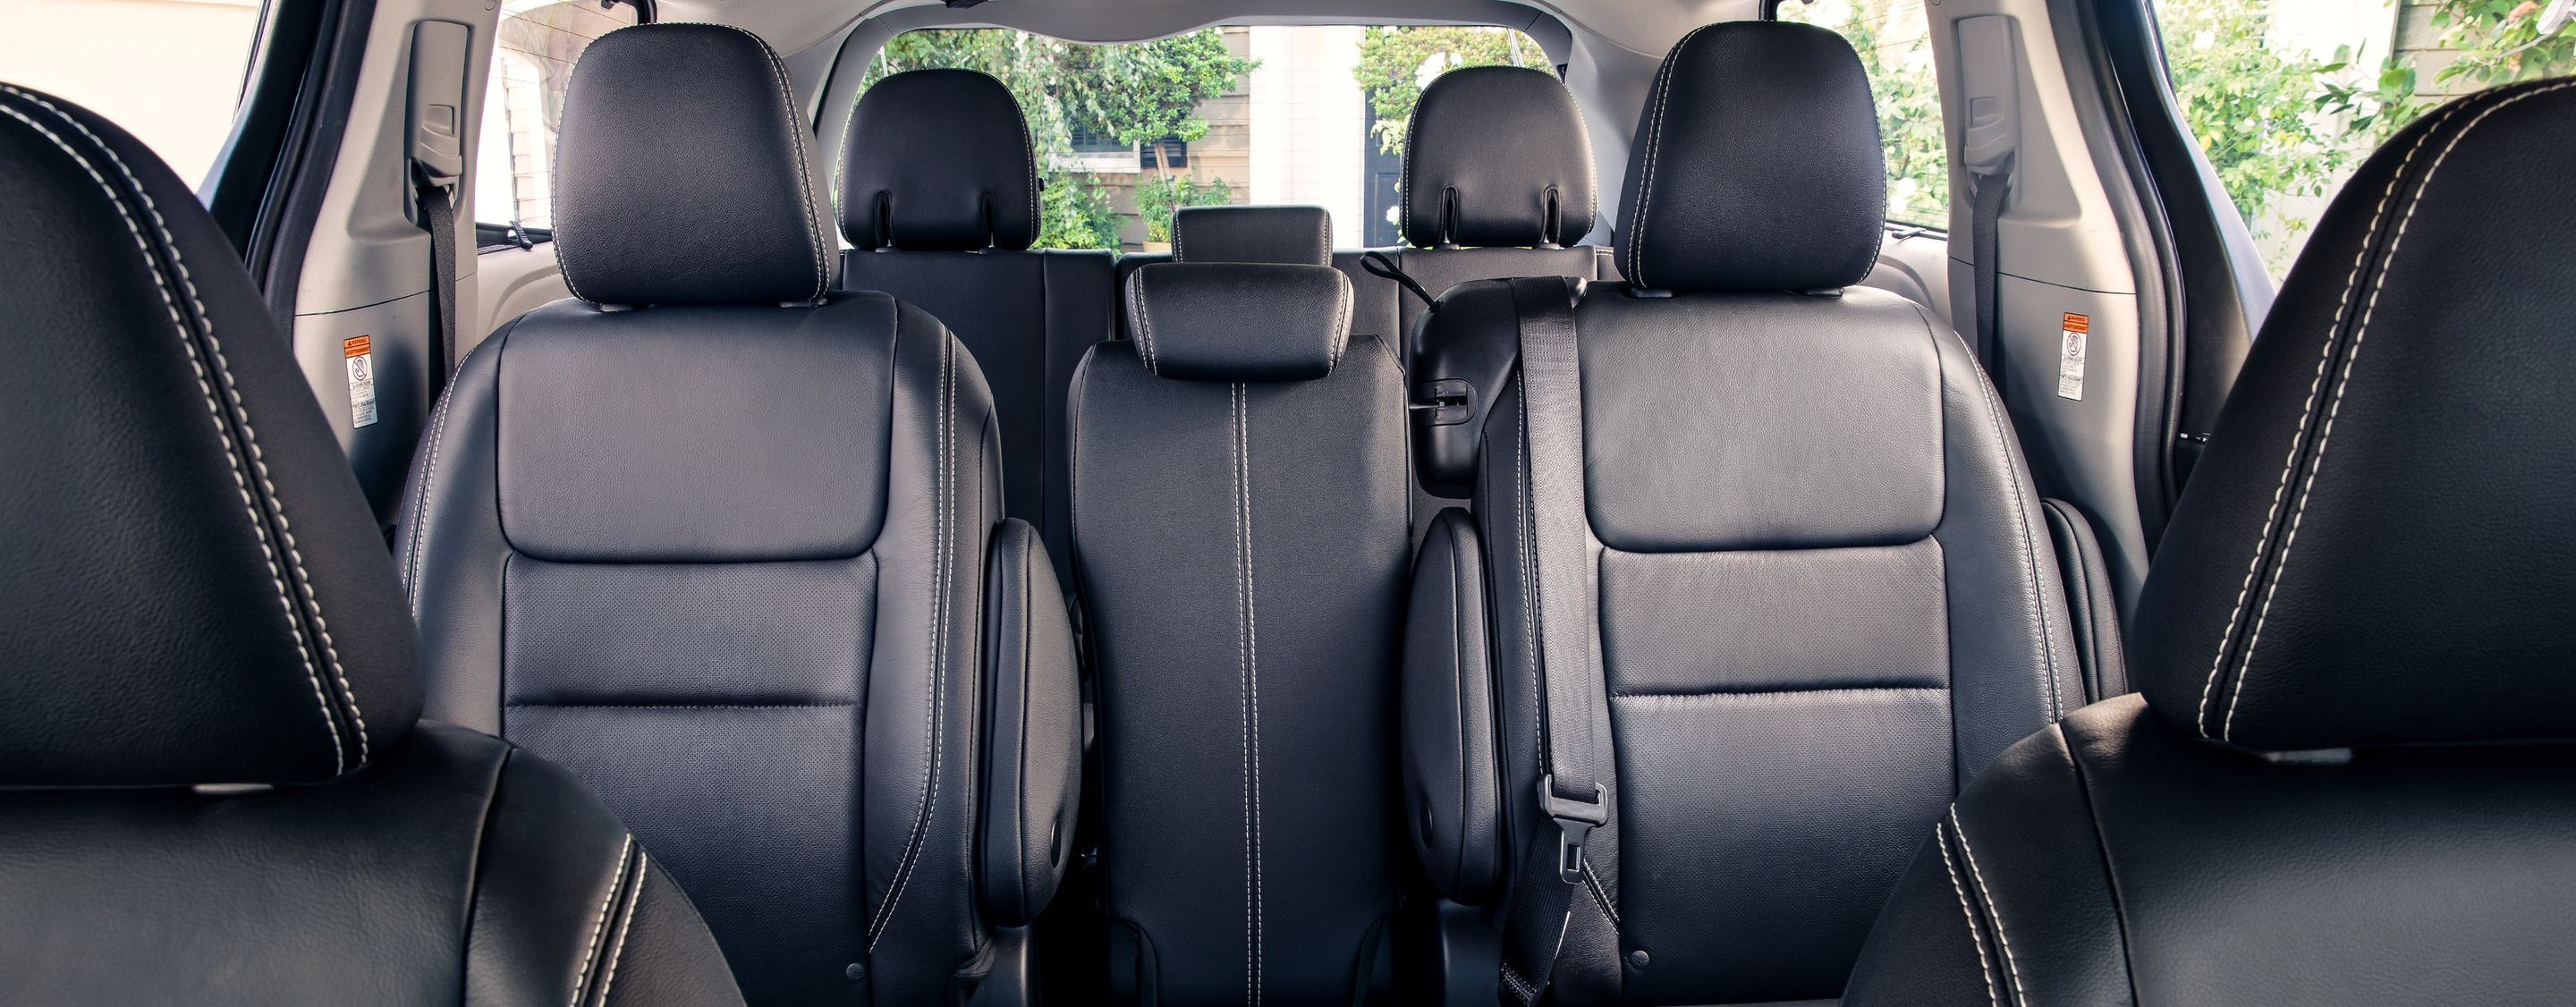 The Sienna's Luxurious Seating